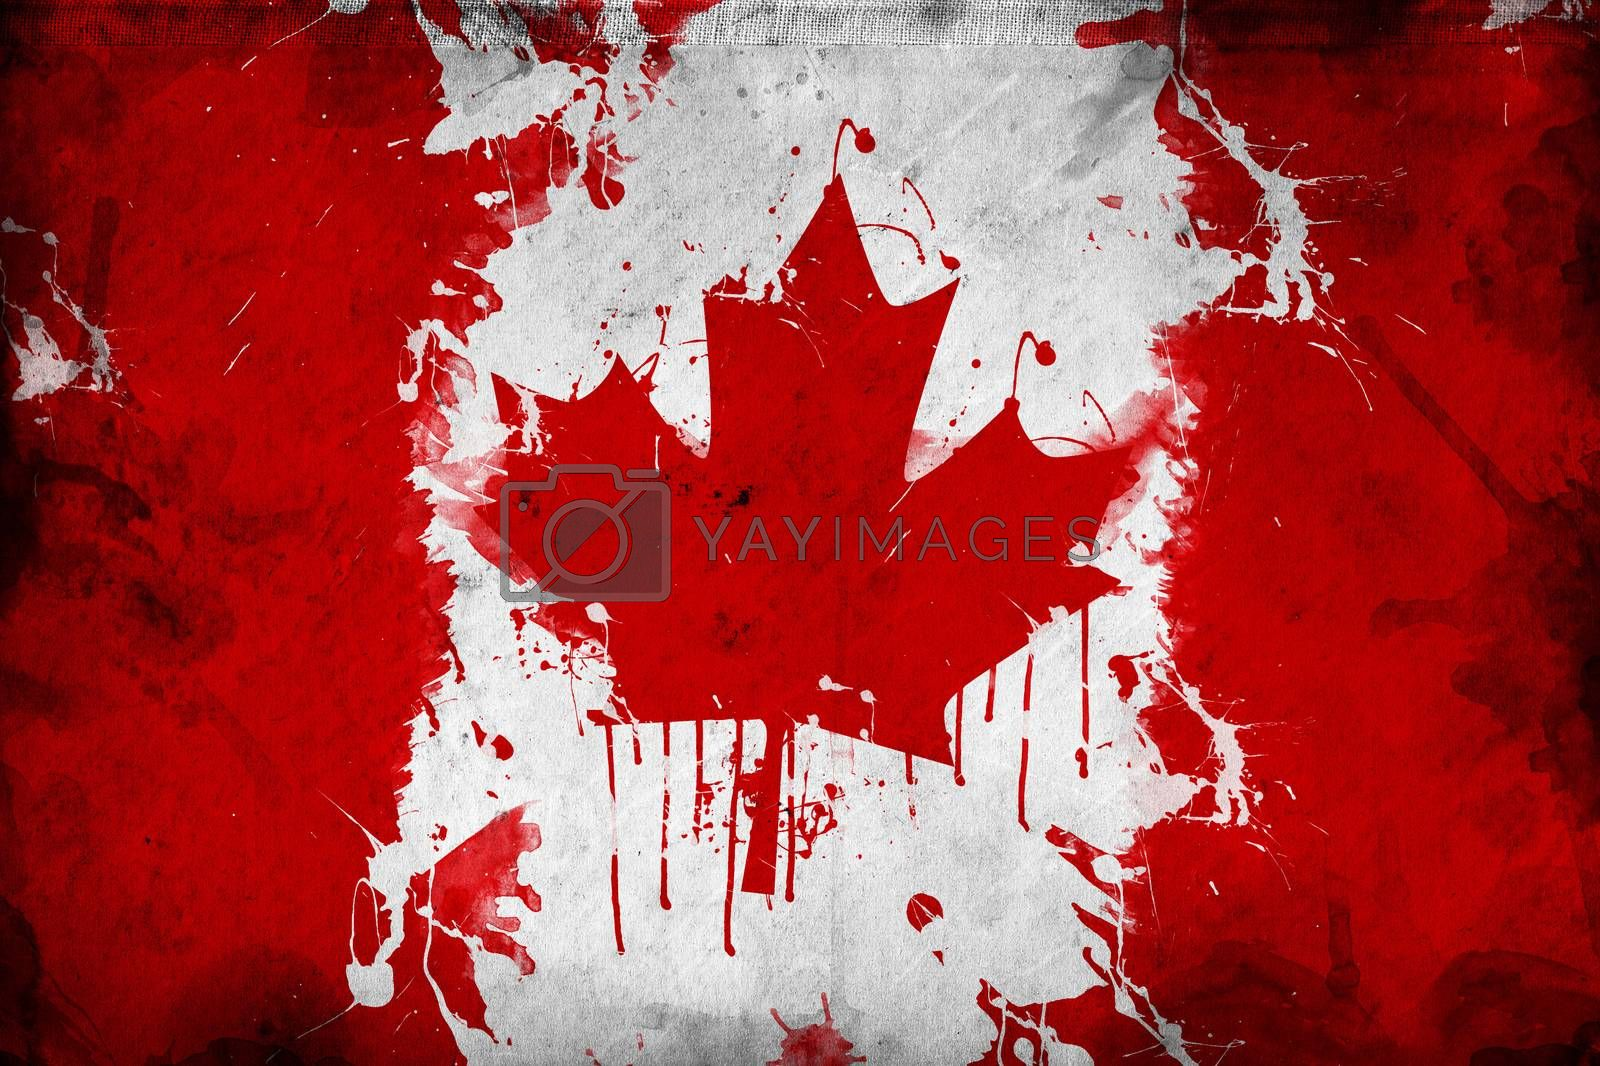 Grunge Canada flag, image is overlaying a detailed grungy texture